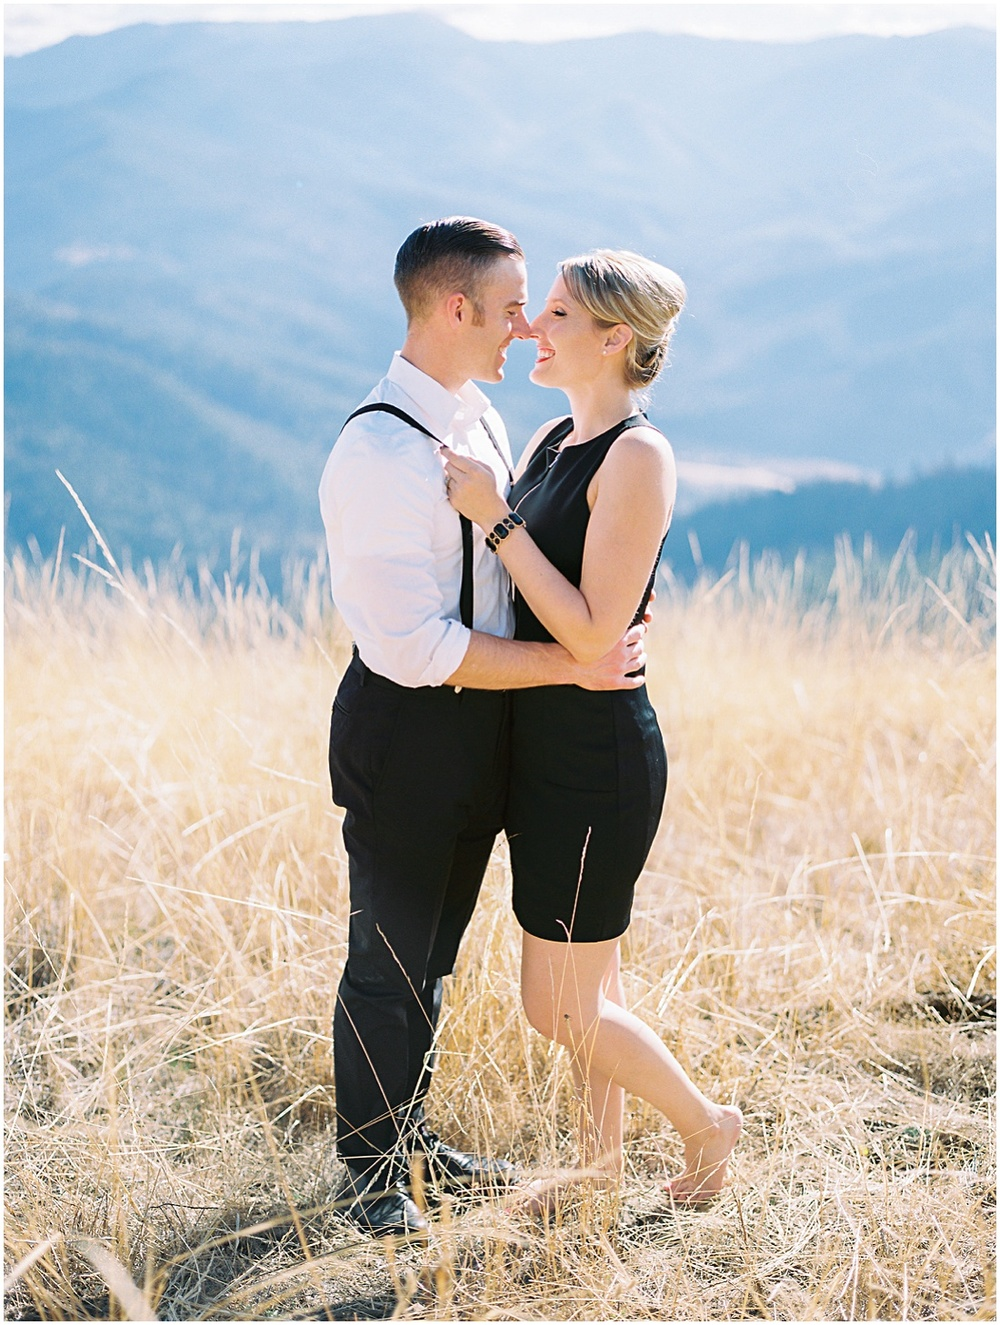 Oregon Wedding & Destination Photography | Olivia Leigh Photography | Medford Oregon Photographer Engagement